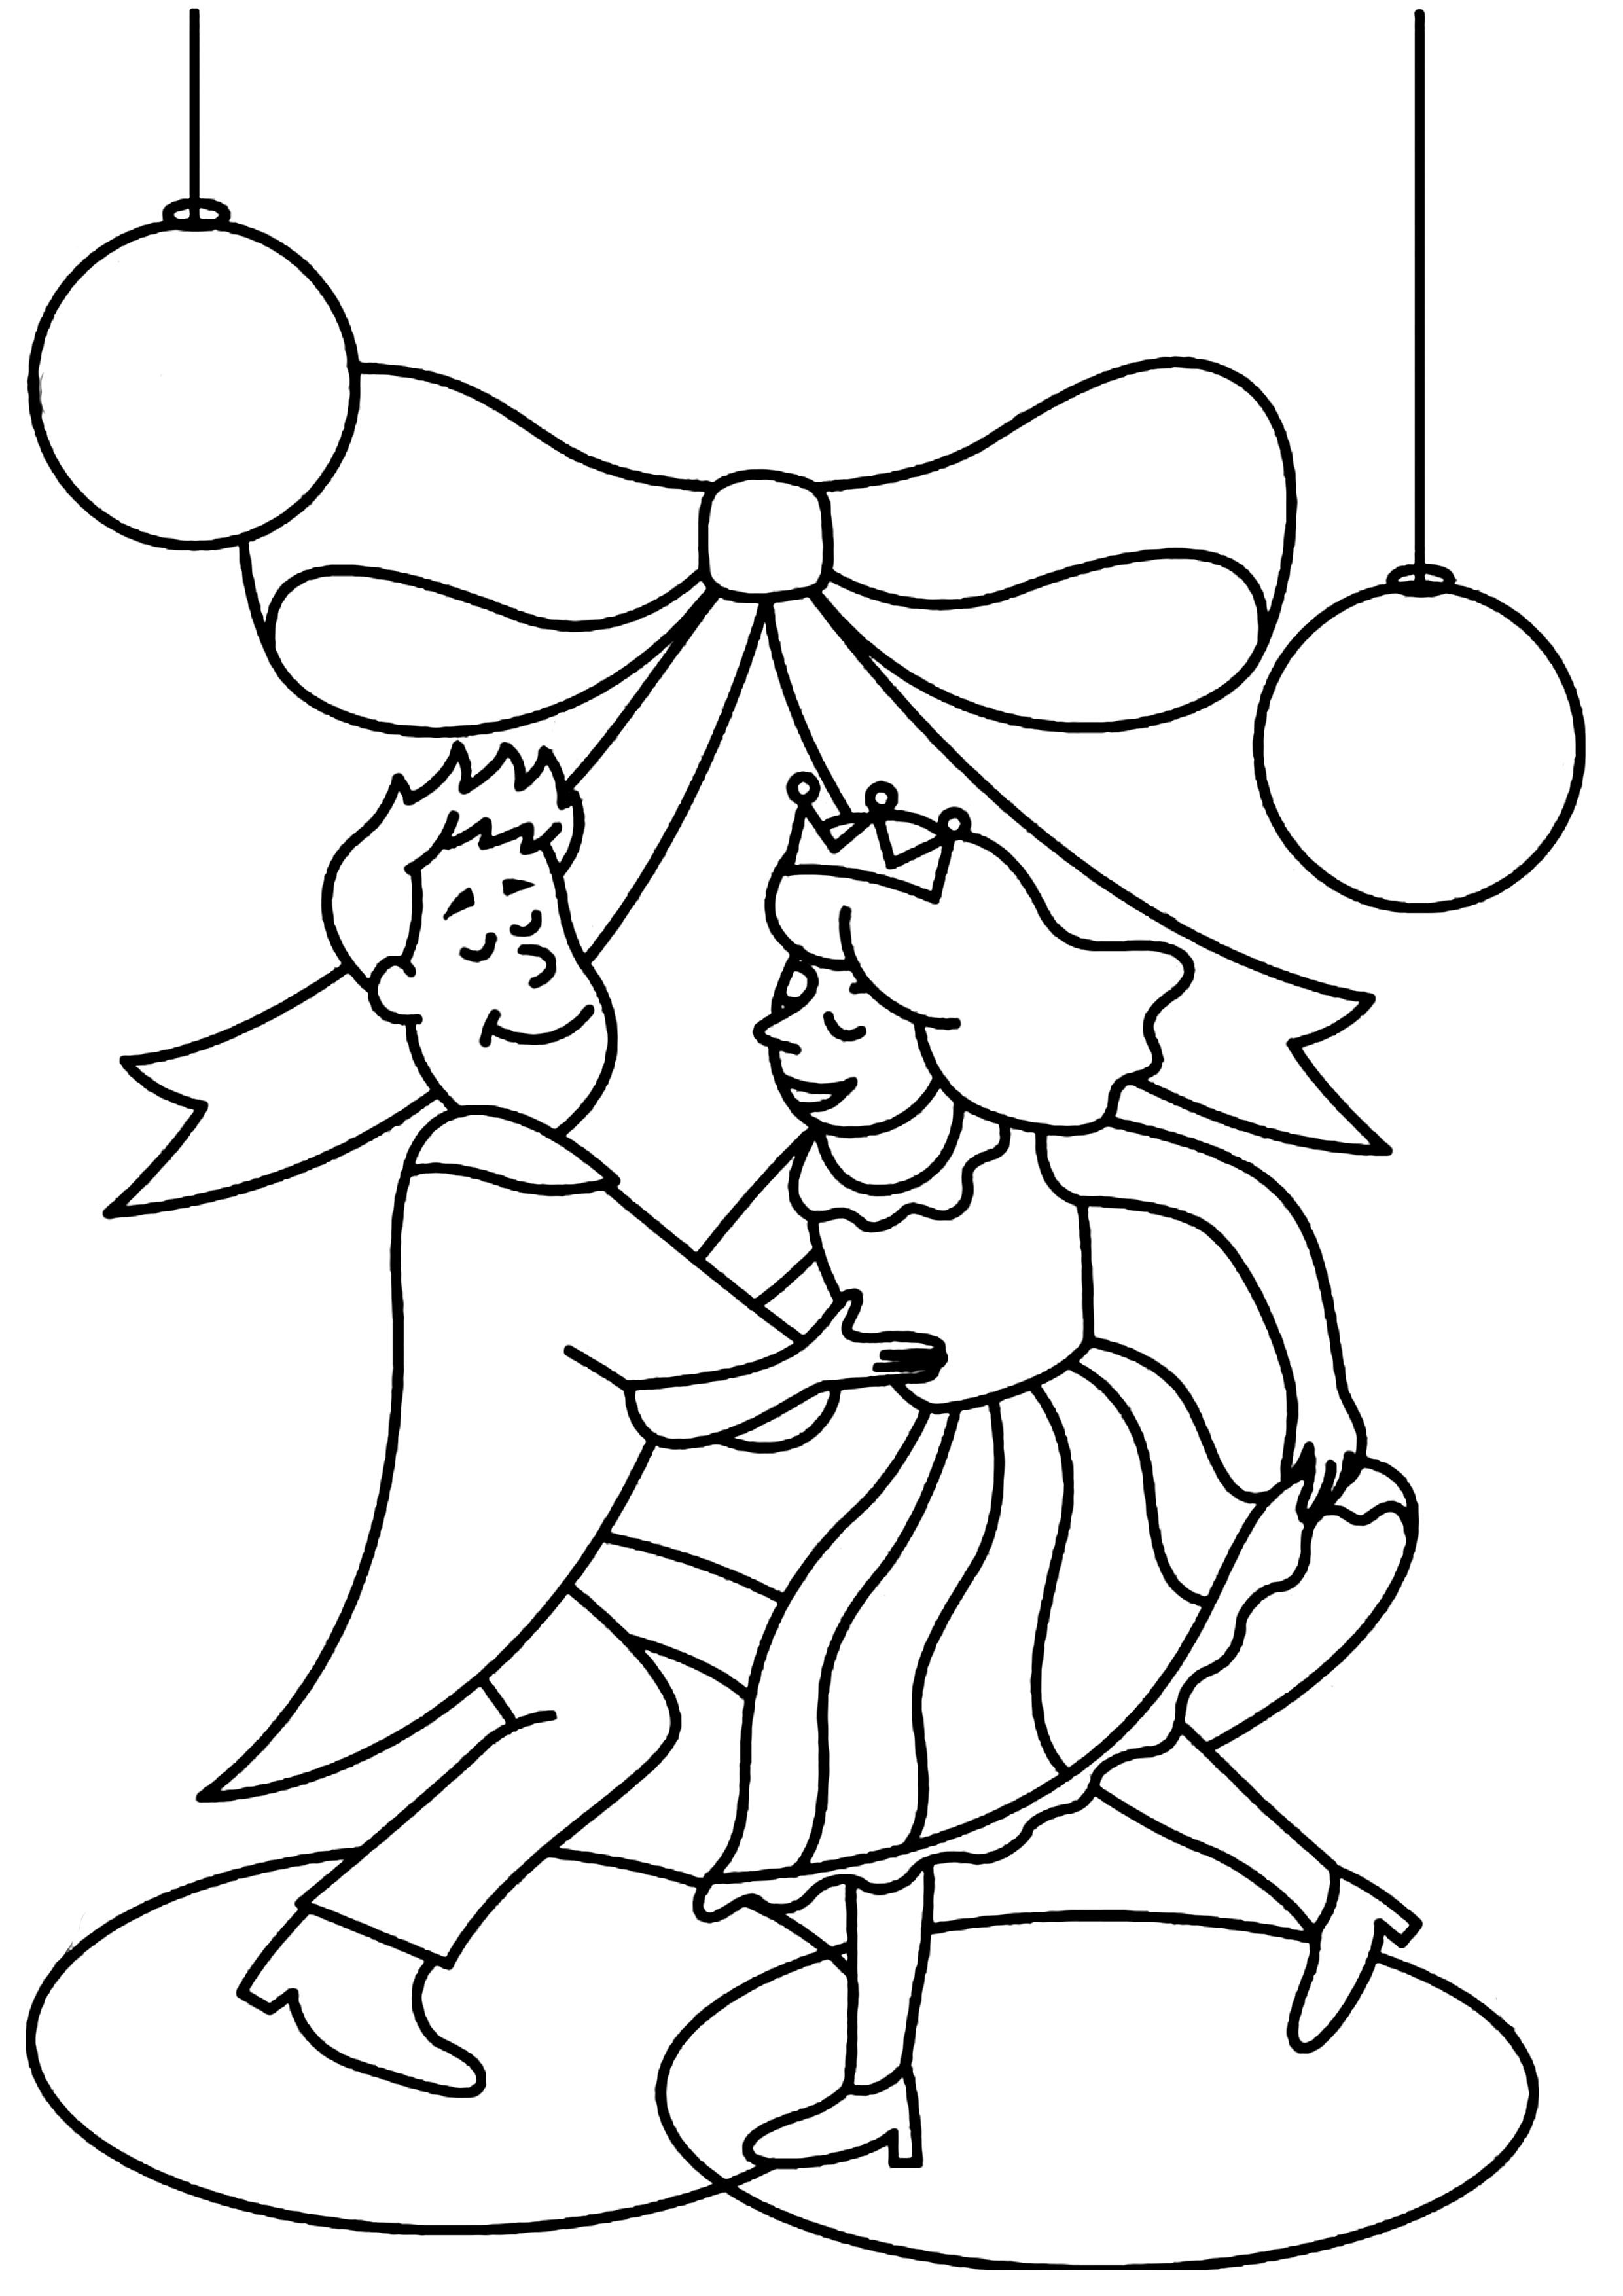 Coloriage - Divers : Mariage 01 - 10 Doigts